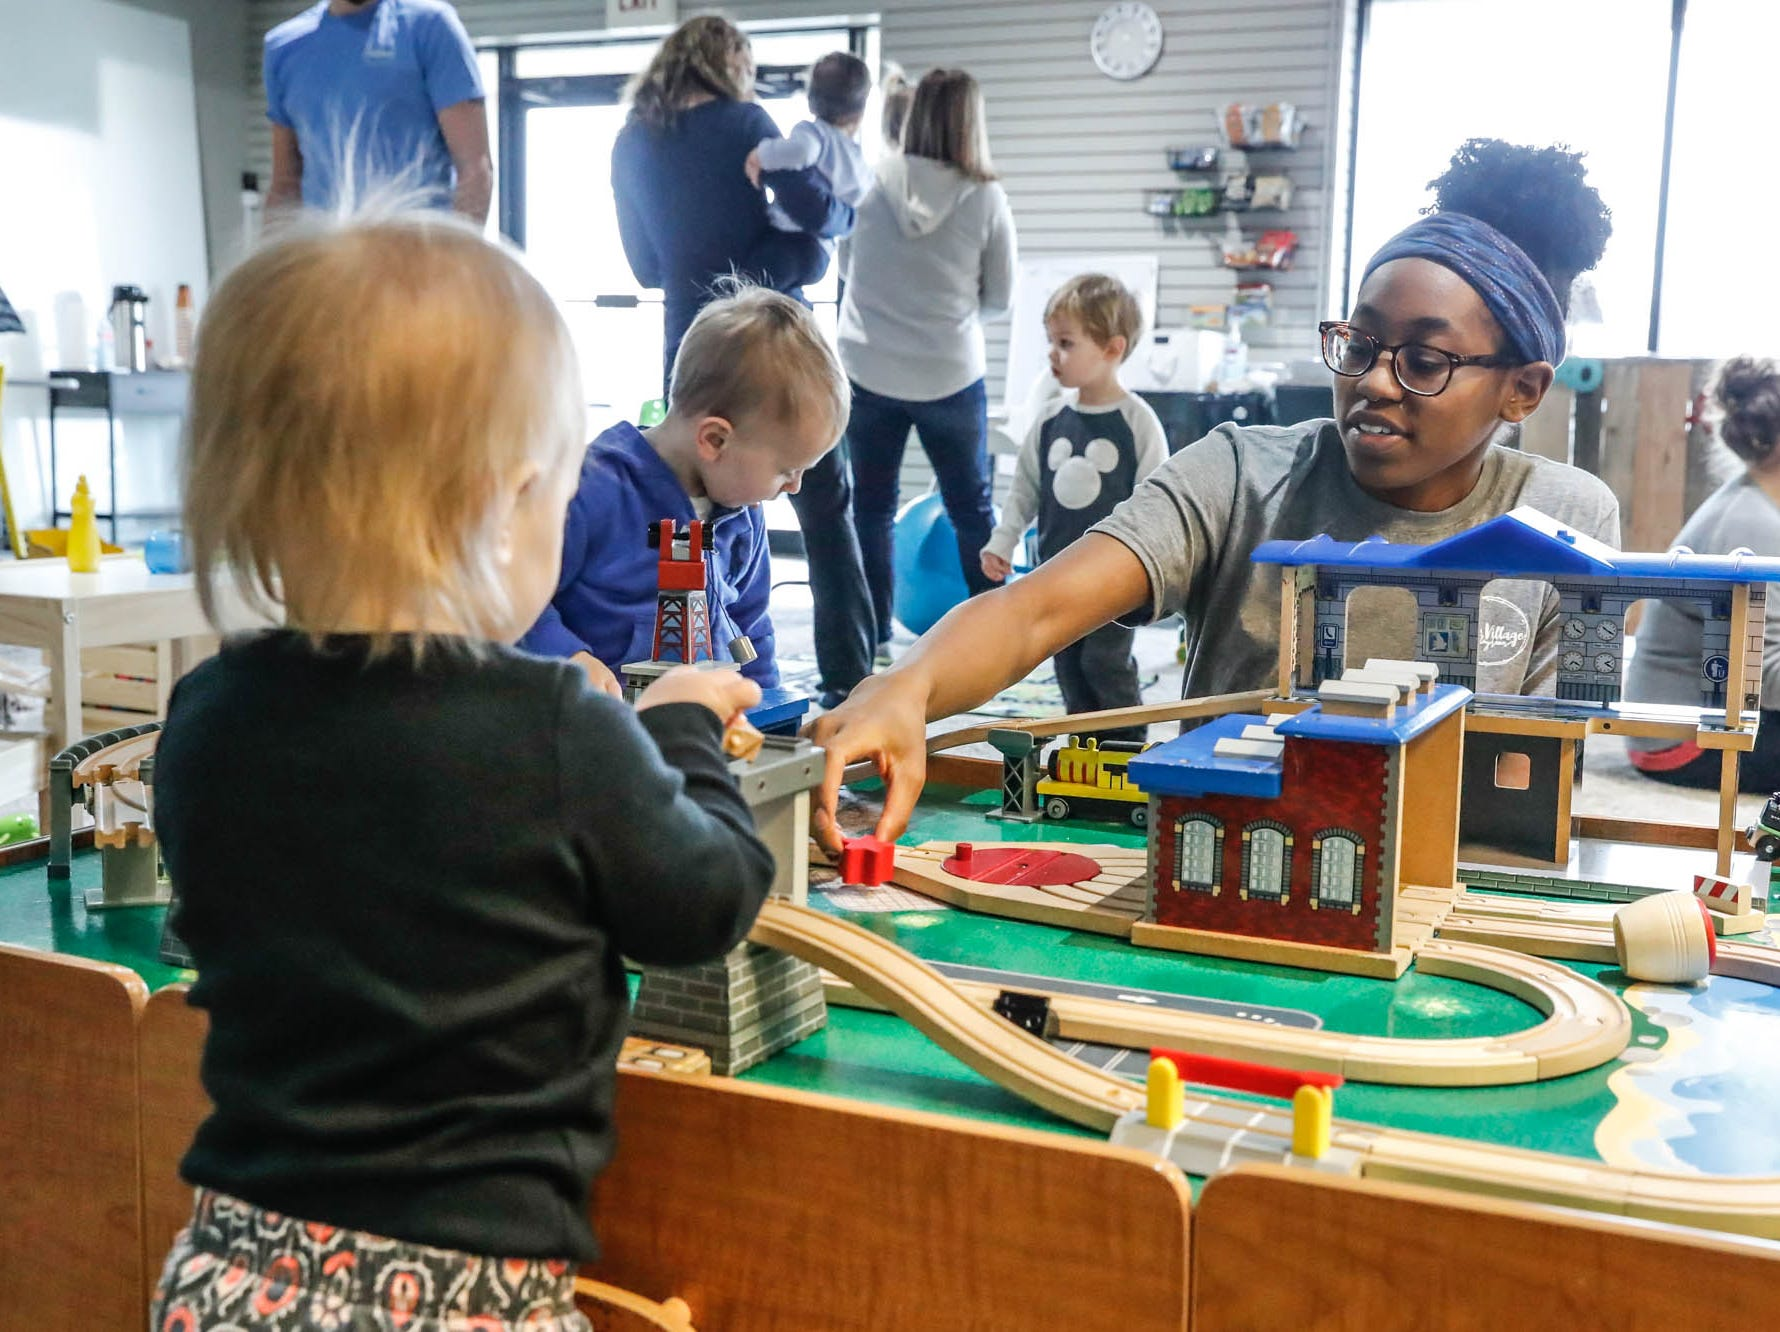 Staff member Maia Wilson, right, plays with Emma Shurtz,  at The Little Village Playroom, 9850 N. Michigan Rd, Carmel, Ind., on Tuesday, Feb. 5, 2019.